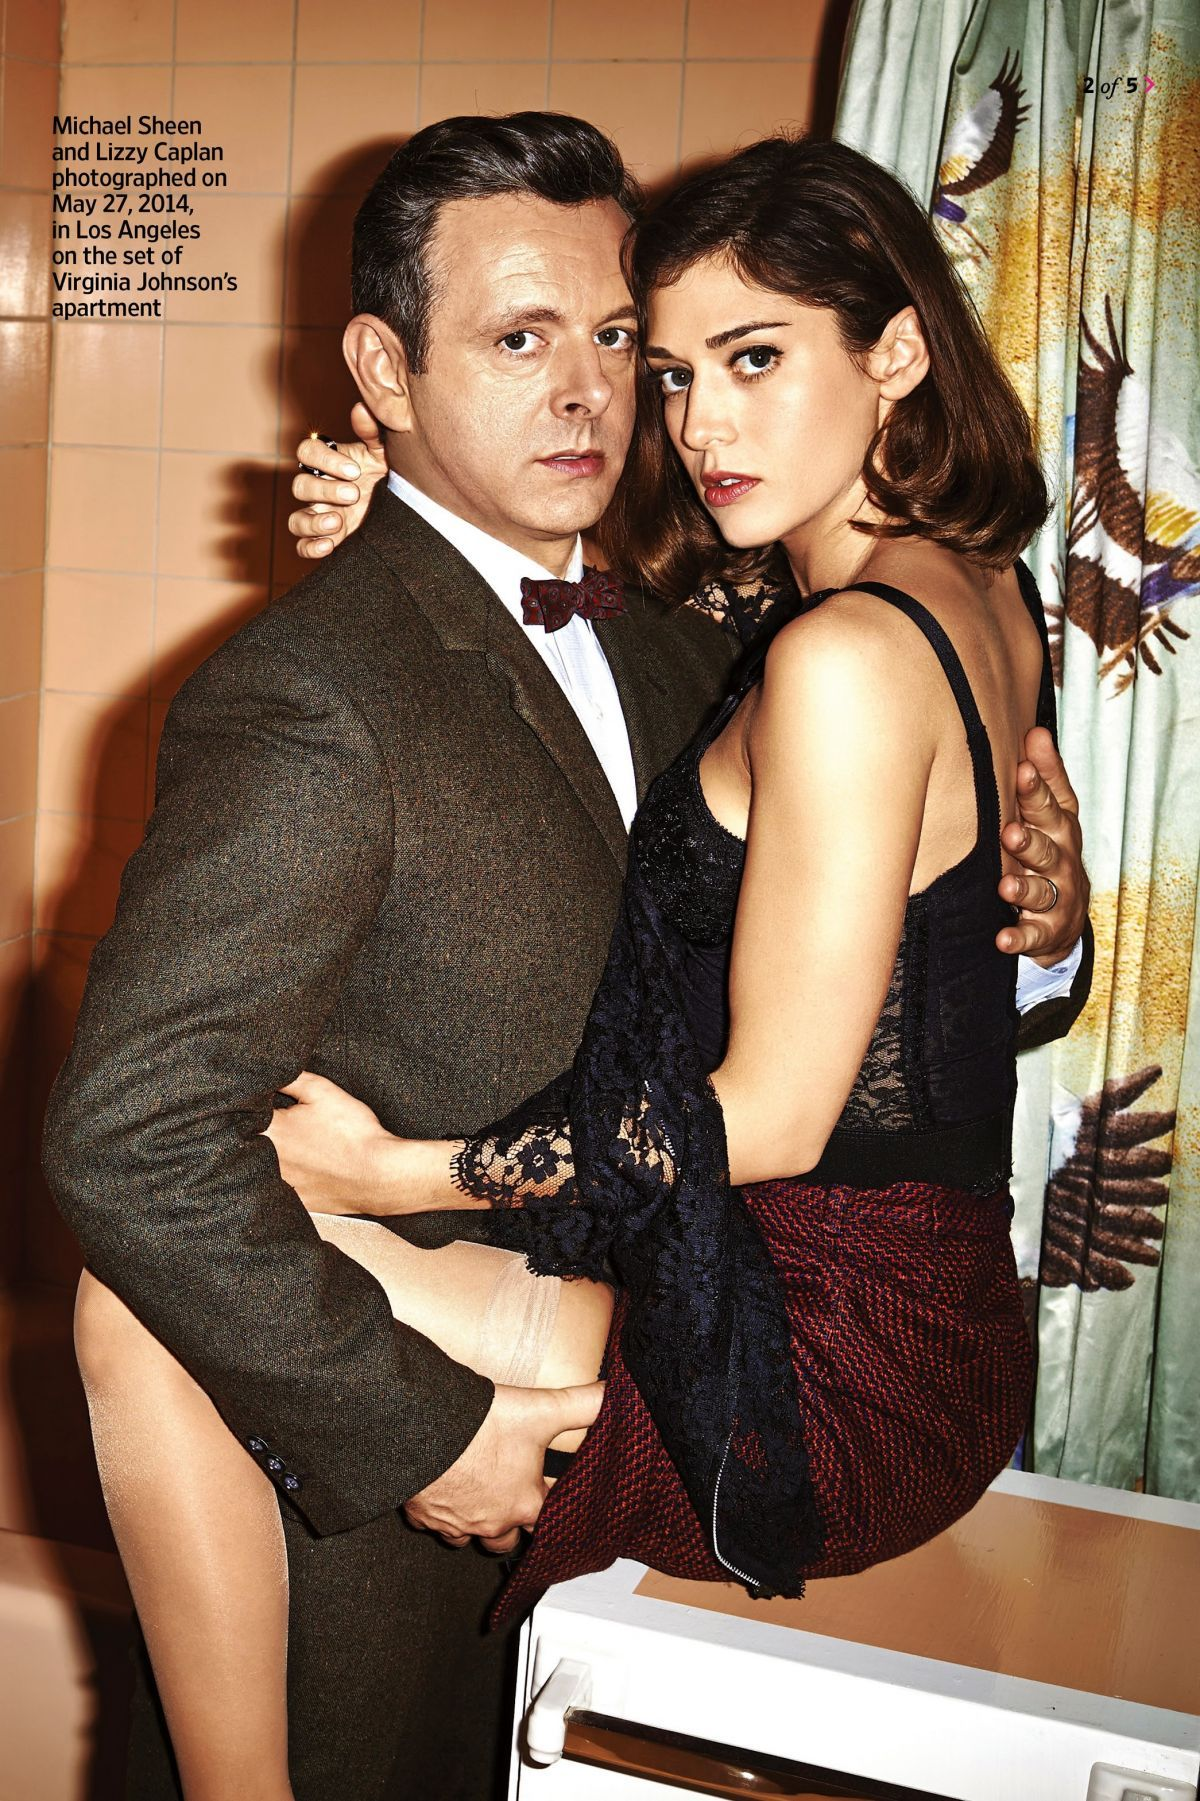 Masters Of Sex getting good reviews before premiere Lainey ...   Michael Sheen Lizzy Caplan